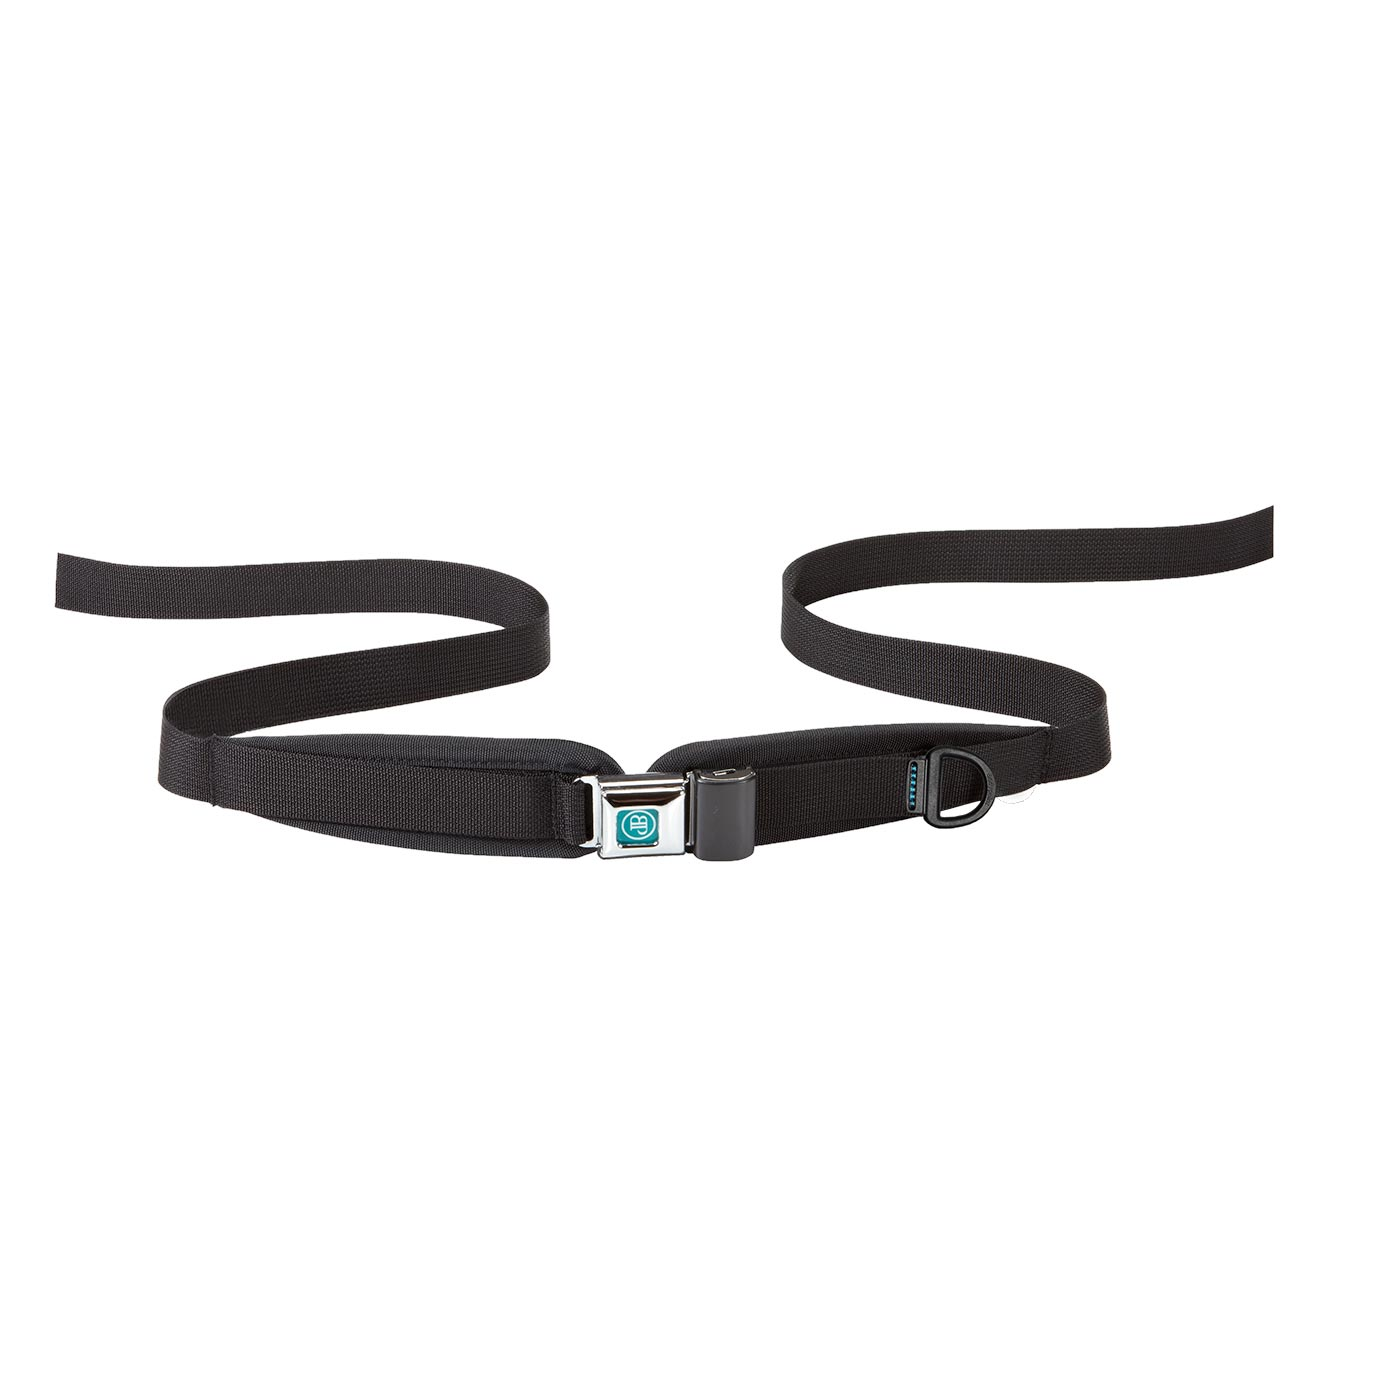 Bodypoint sub-Asis compatible center-pull two-point padded hip belt with metal push button buckle - small